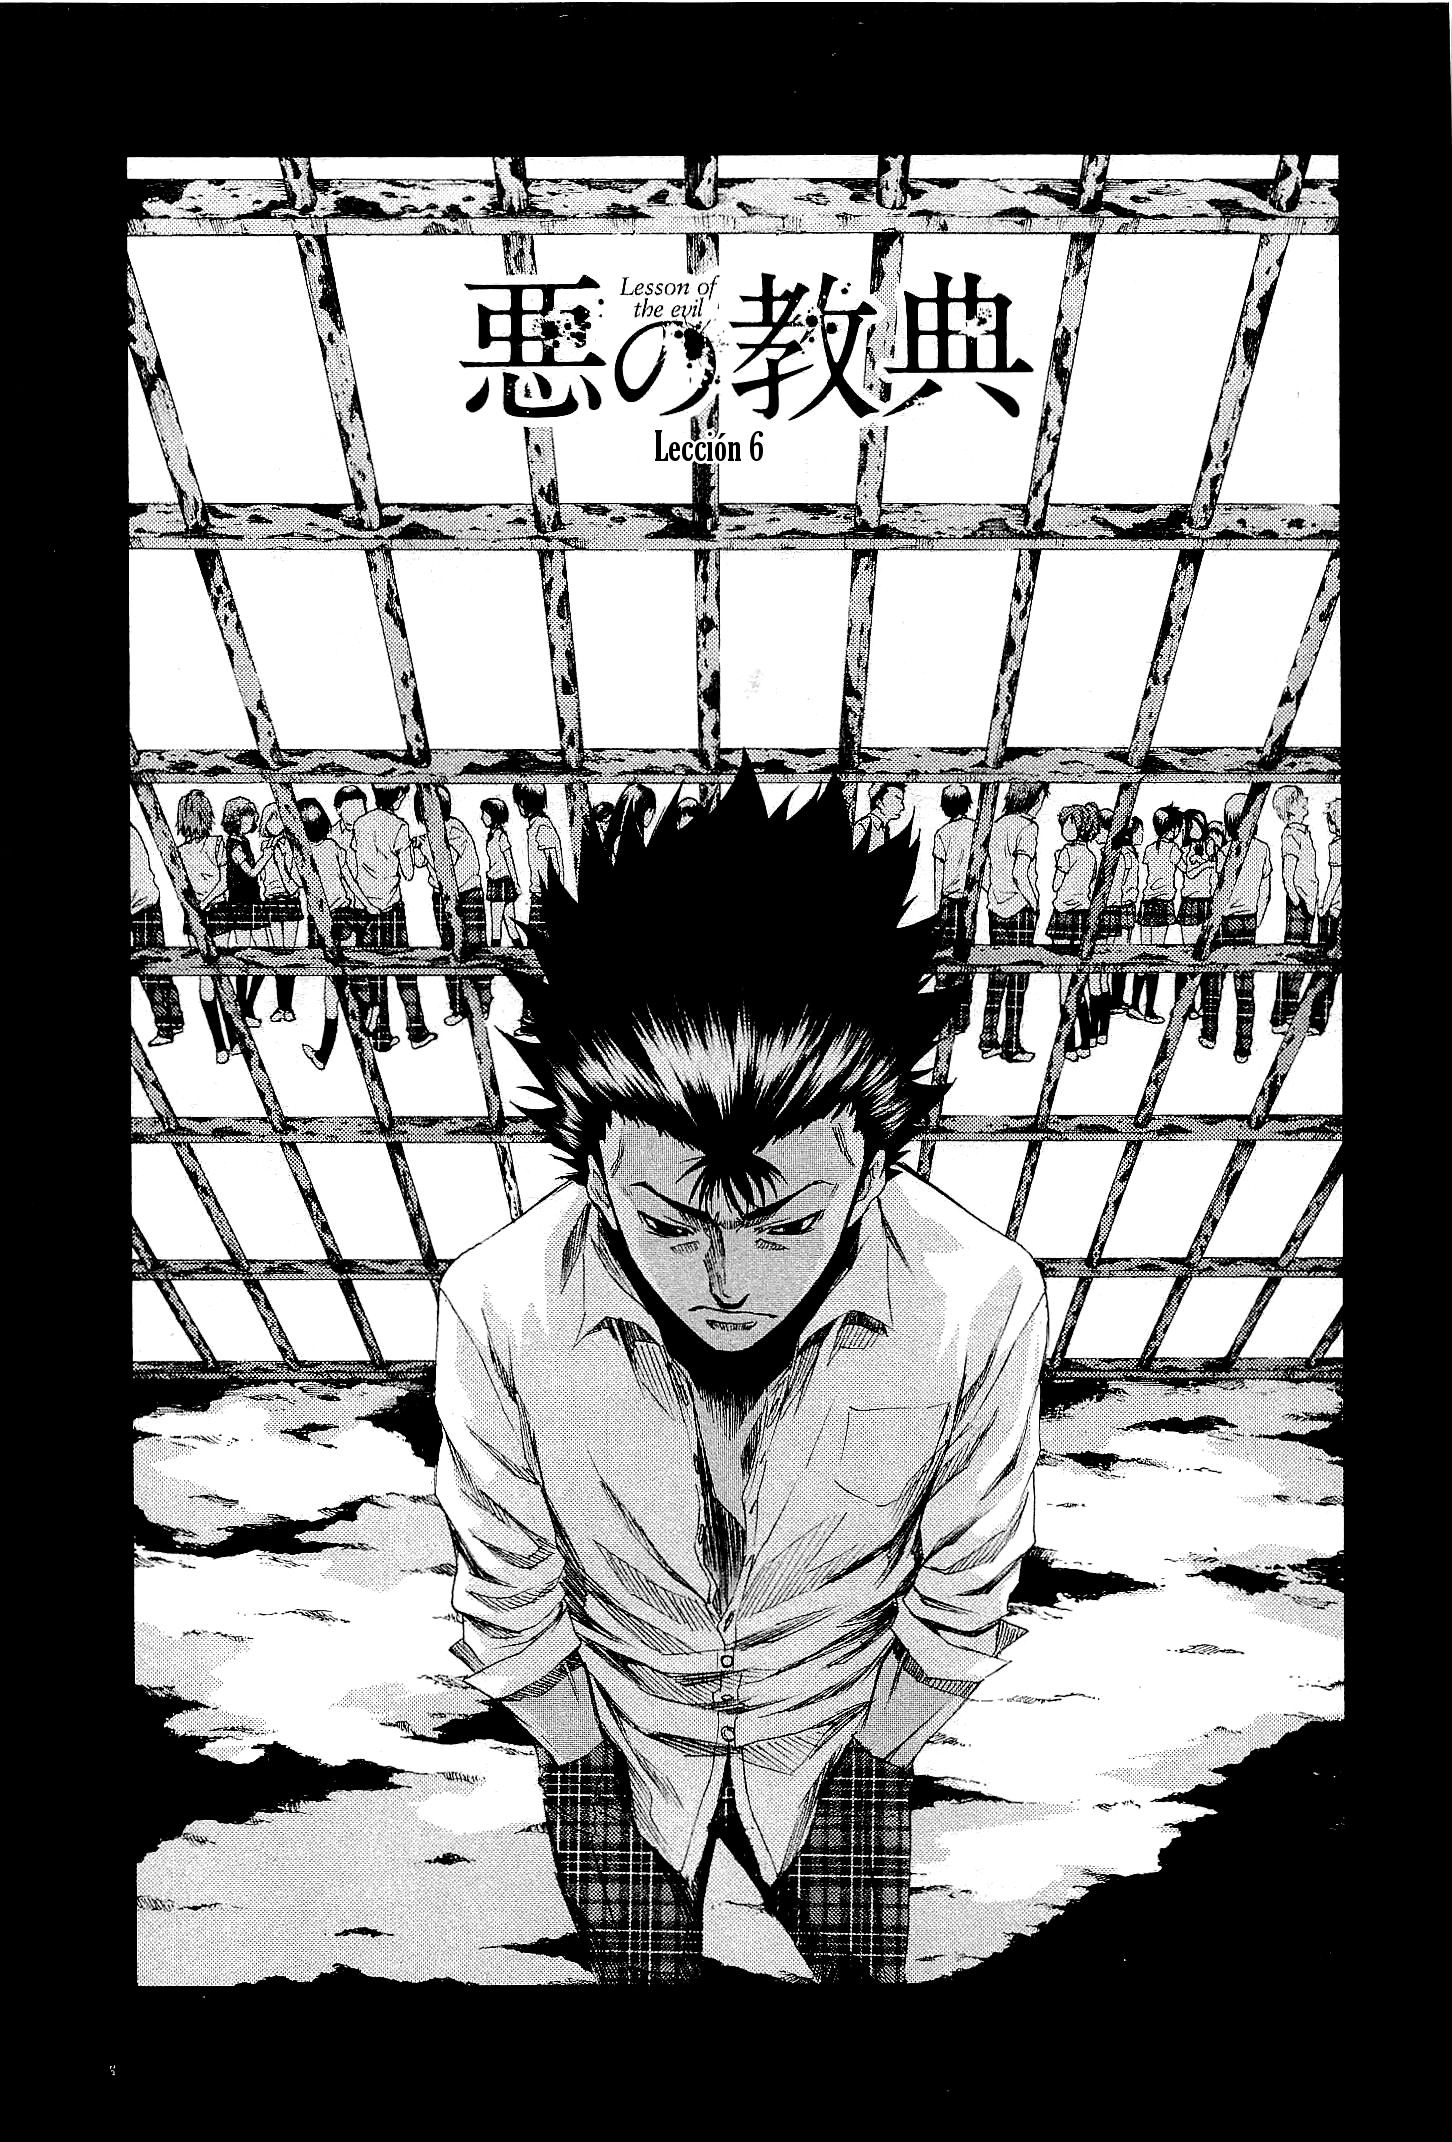 http://c5.ninemanga.com/es_manga/pic2/3/19523/518613/e3133801456d68c42114514a81db864b.jpg Page 2